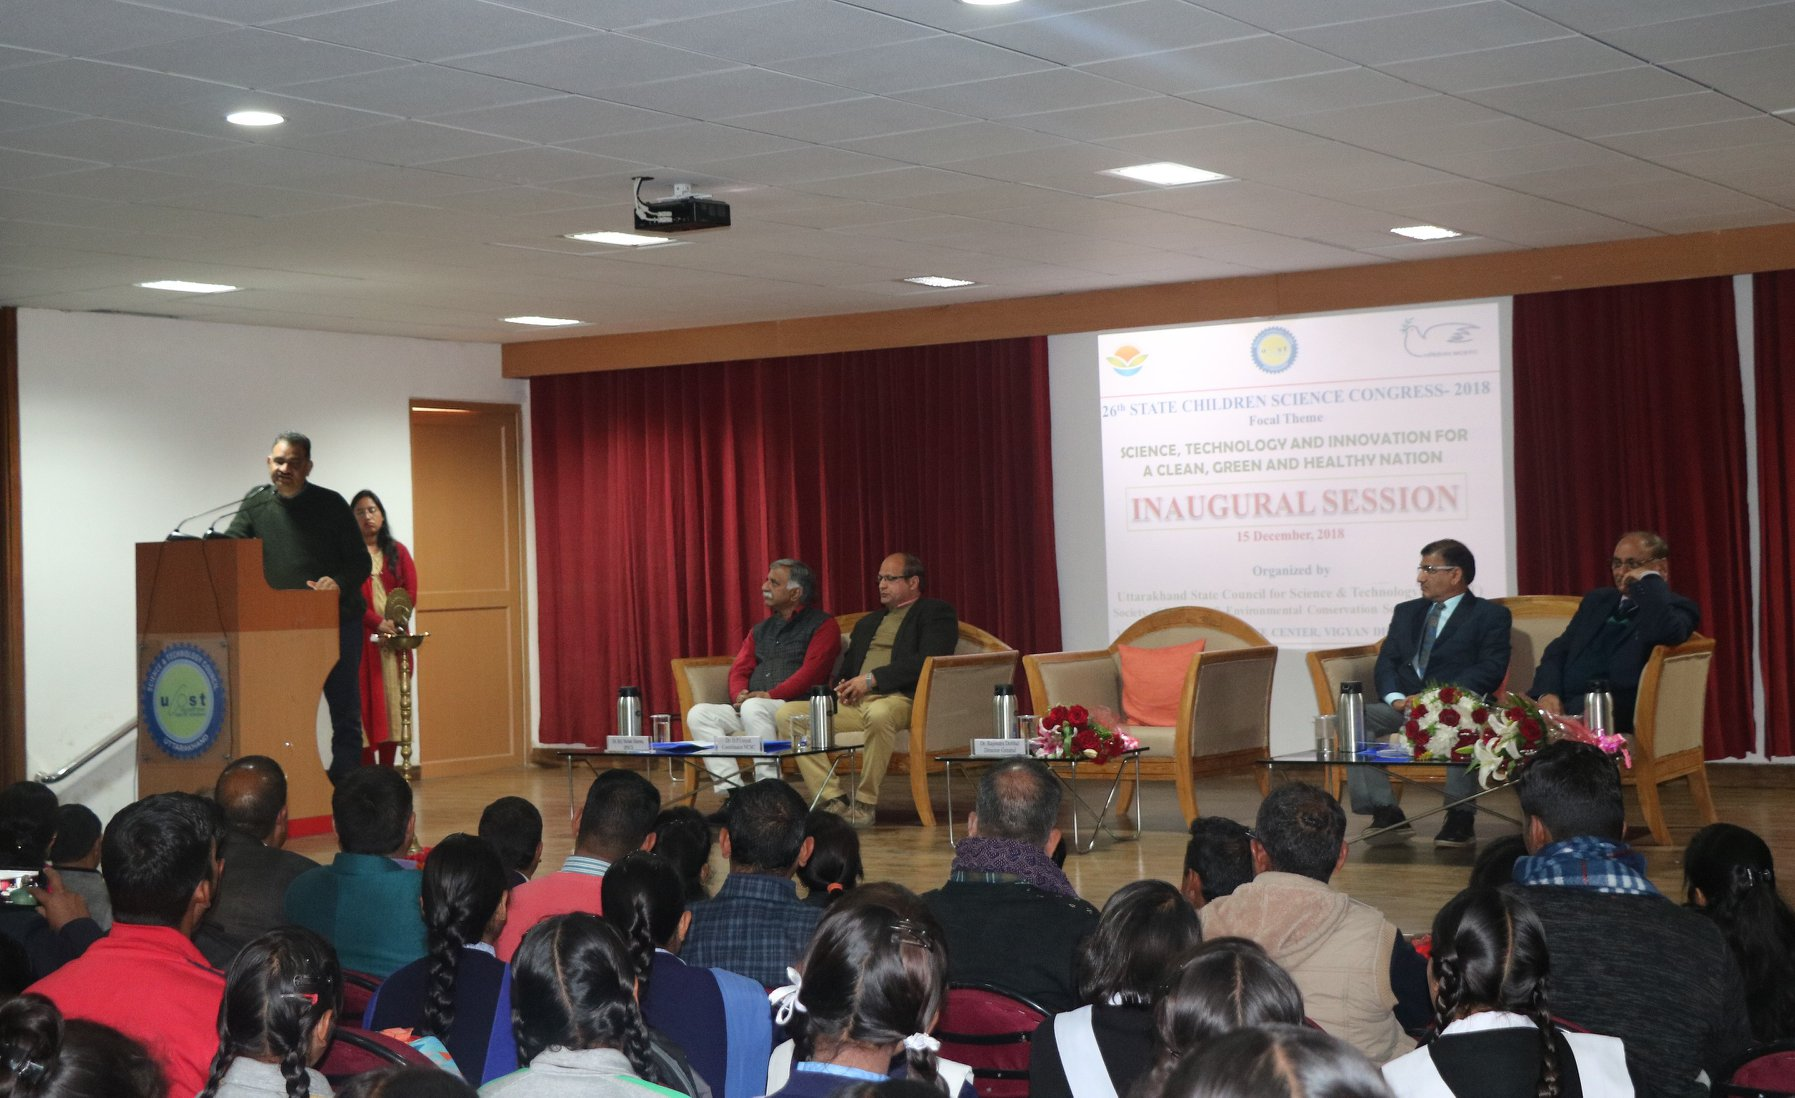 The Science Of Getting Kids Organized >> State Level Children Science Congress 2018 Organized At Ucost